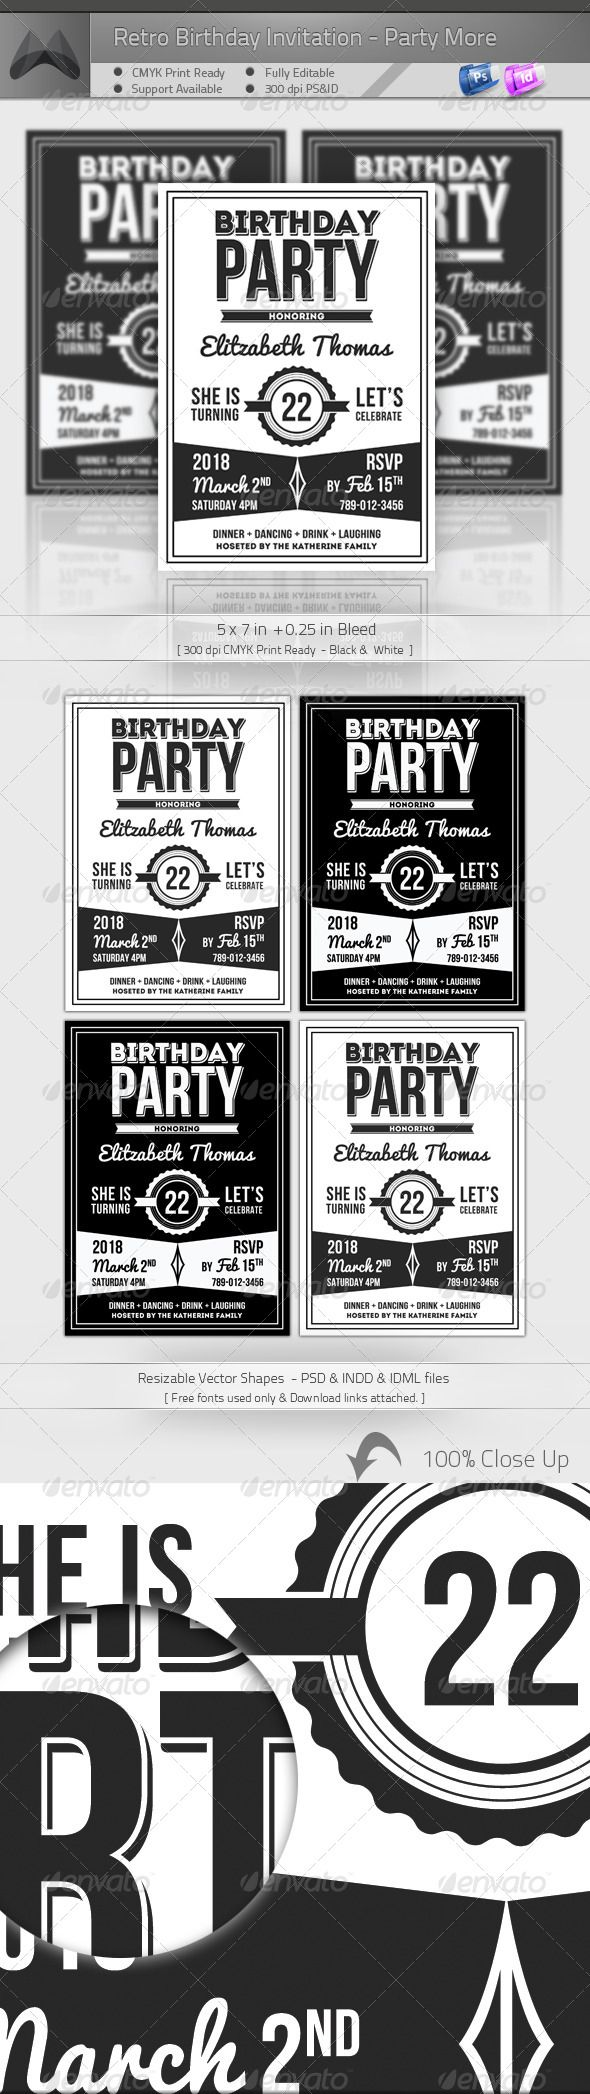 Retro Birthday Invitation Party More Retro Birthday Badge - Retro birthday invitation template